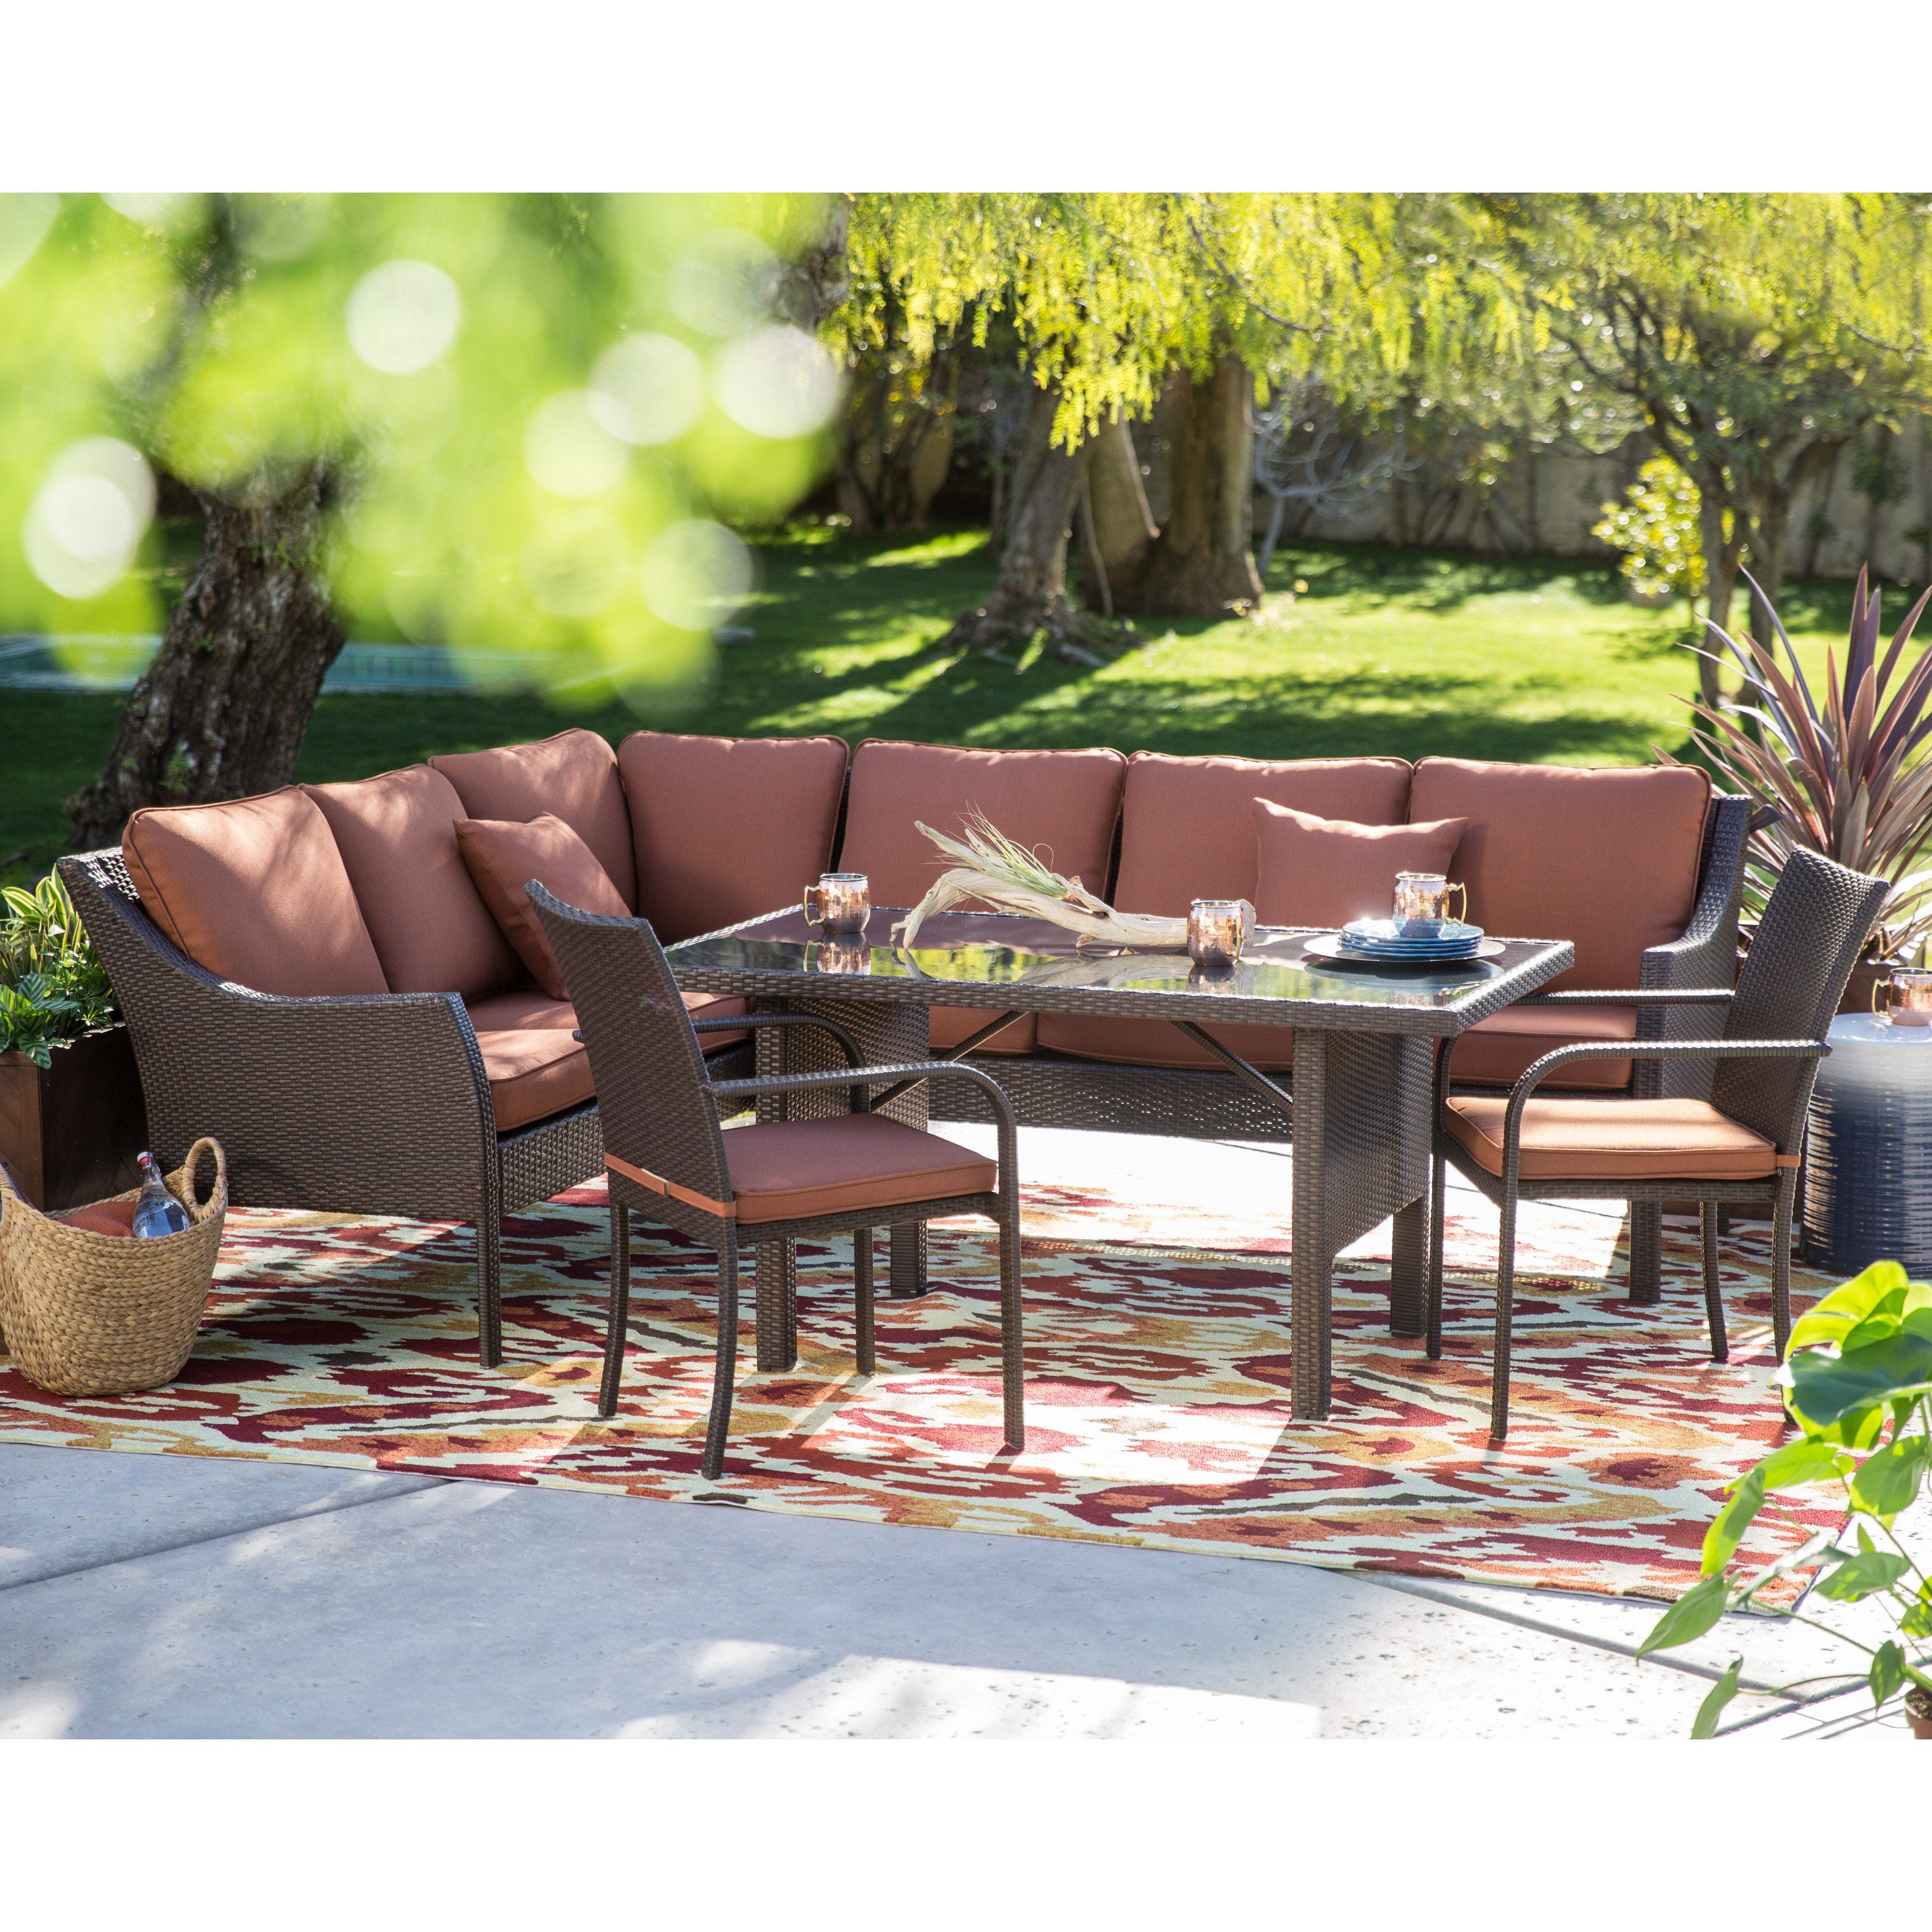 Belham Living Devon All Weather Wicker Sofa Sectional Patio Dining